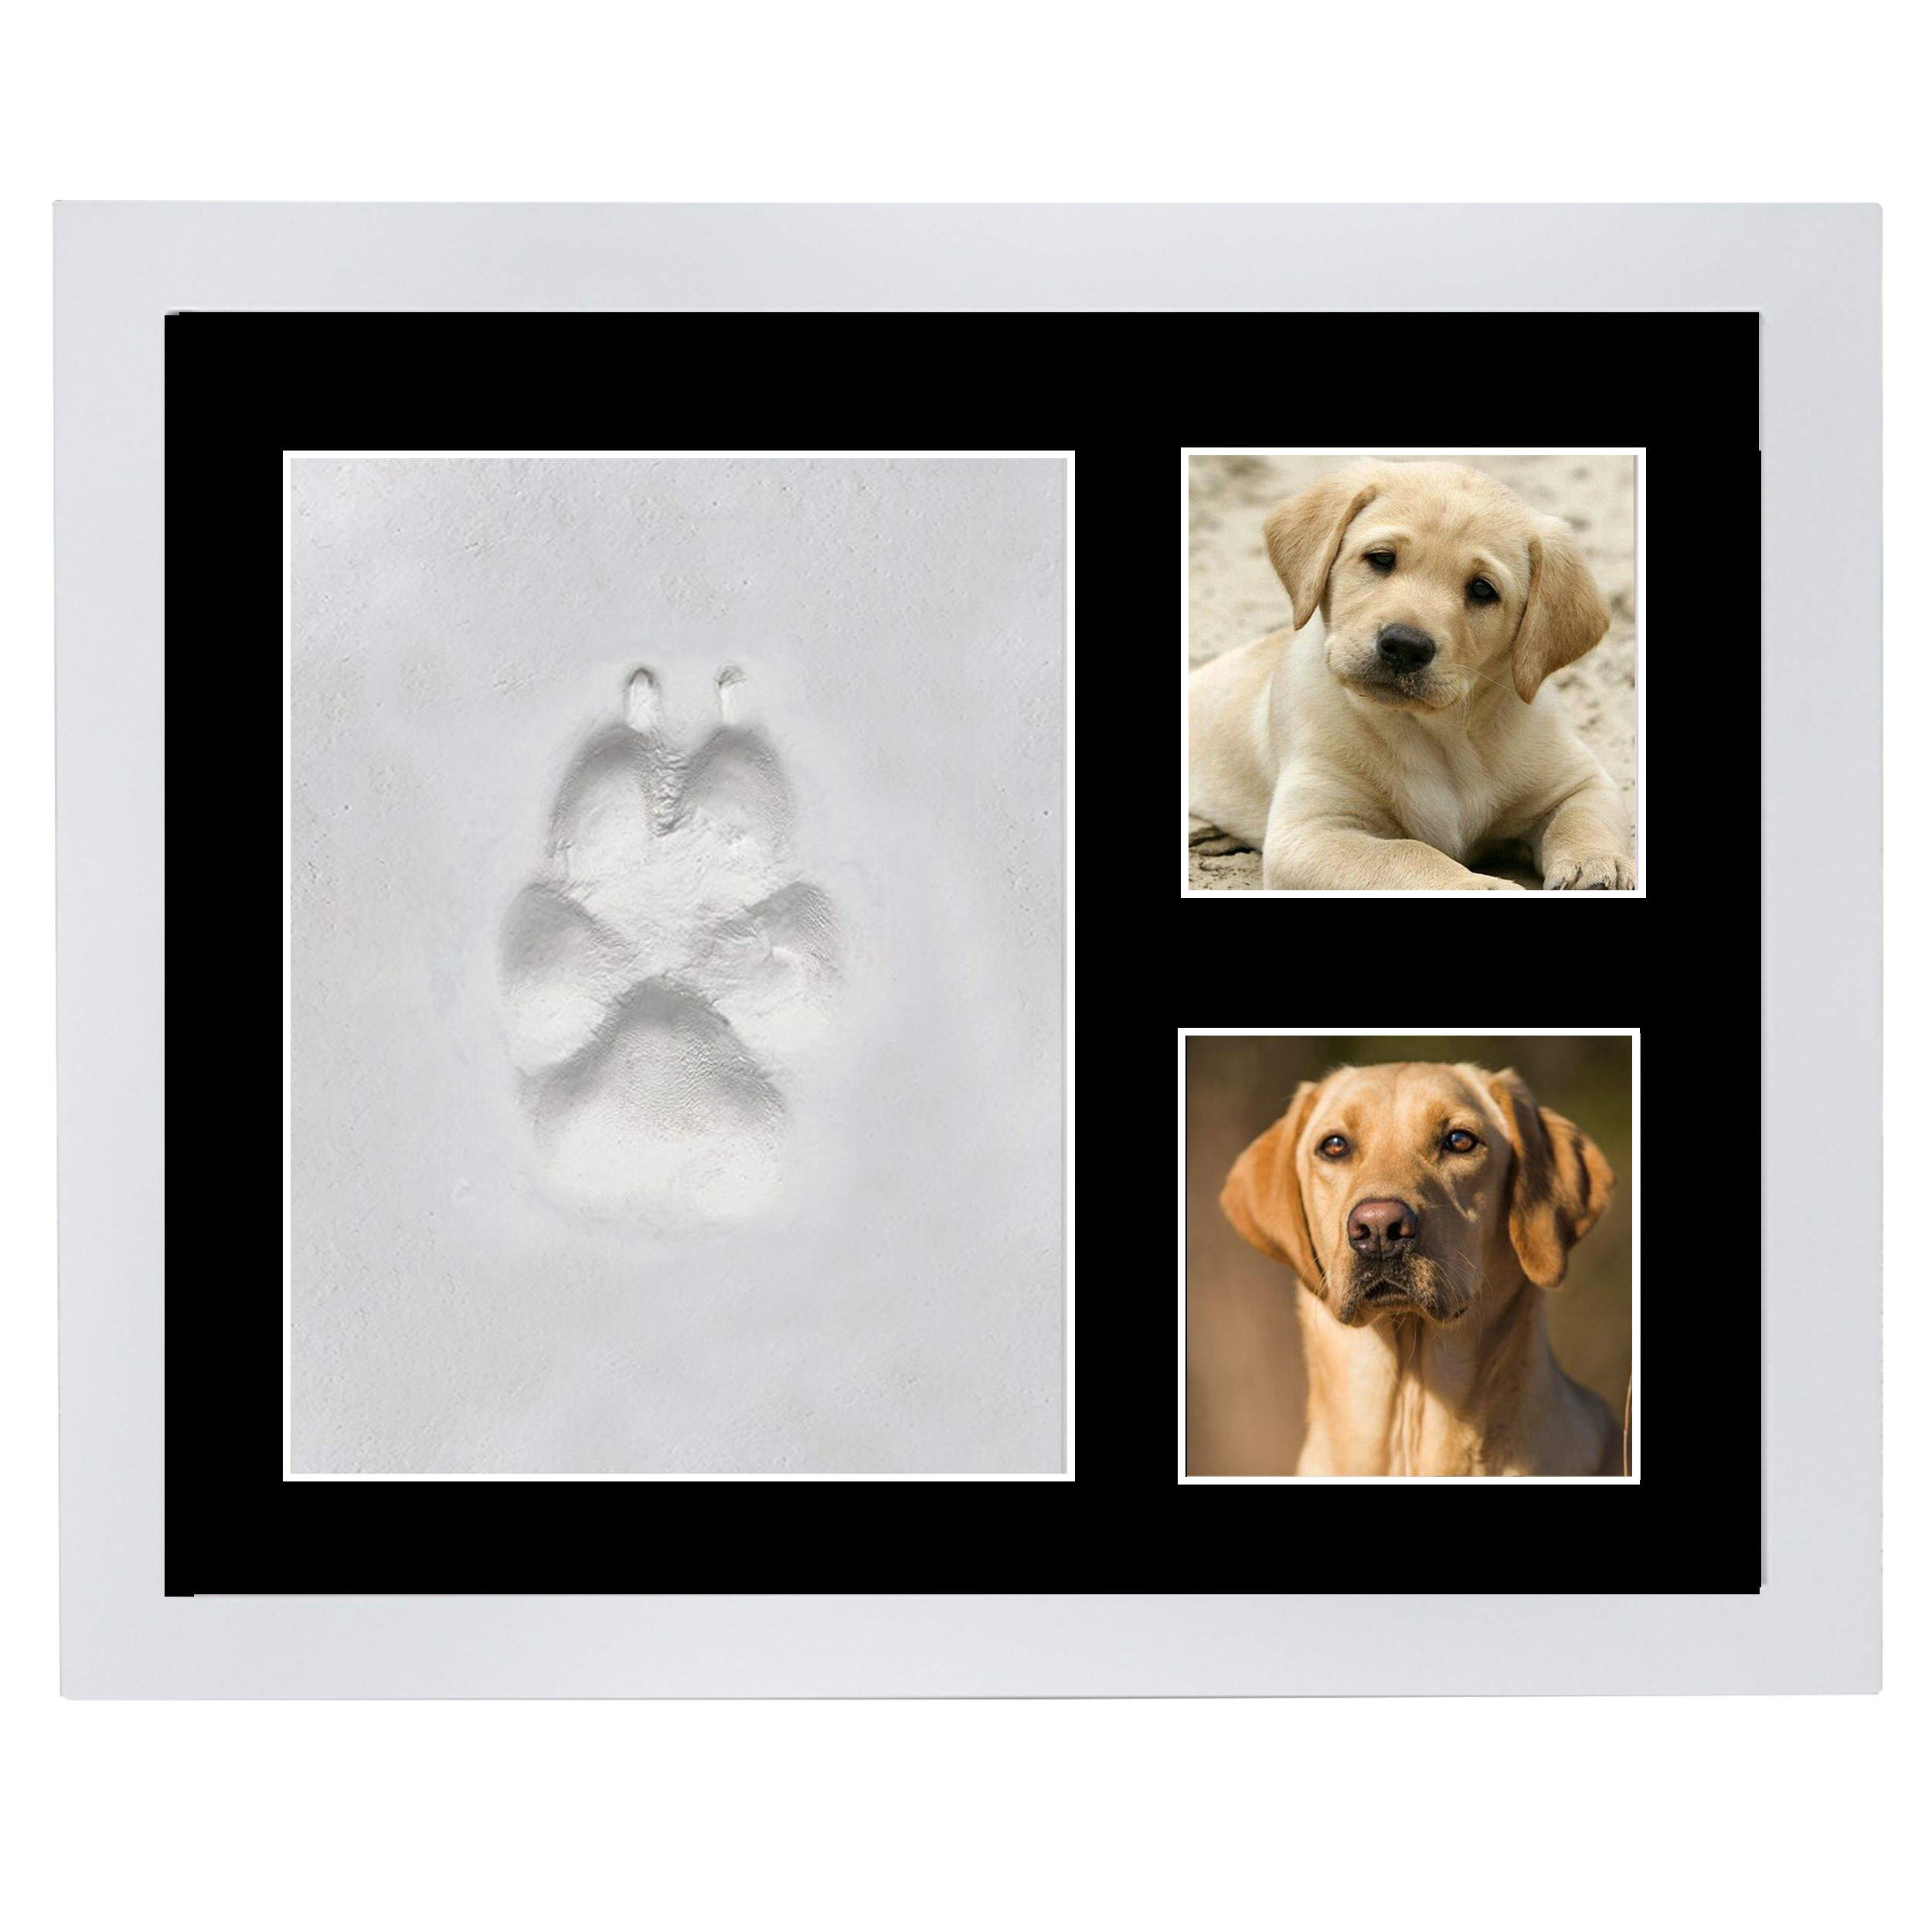 Veahma Baby Quality Clay Imprint Kit! White Wood Picture Frame|(BLACK) Mat|Non-Toxic Clay|Pet Paw Print Kit|Unique Baby Shower Gift for New Born Baby, Boy, Girl, Pet, Parents! (Black)